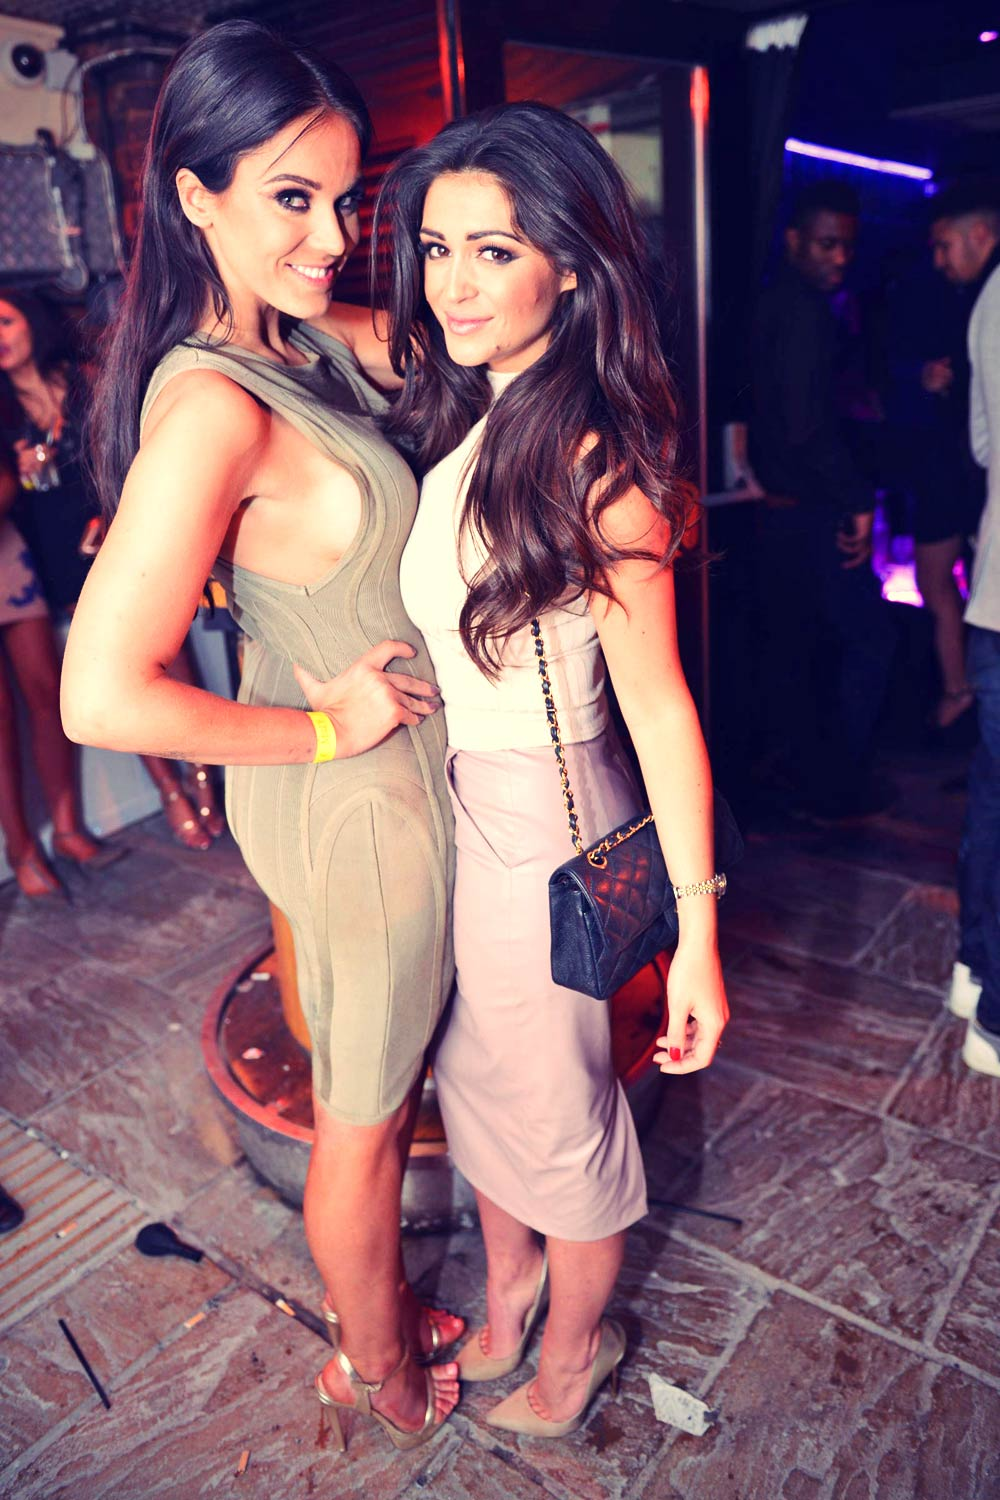 Vicky Pattison night out at the Bijou Club